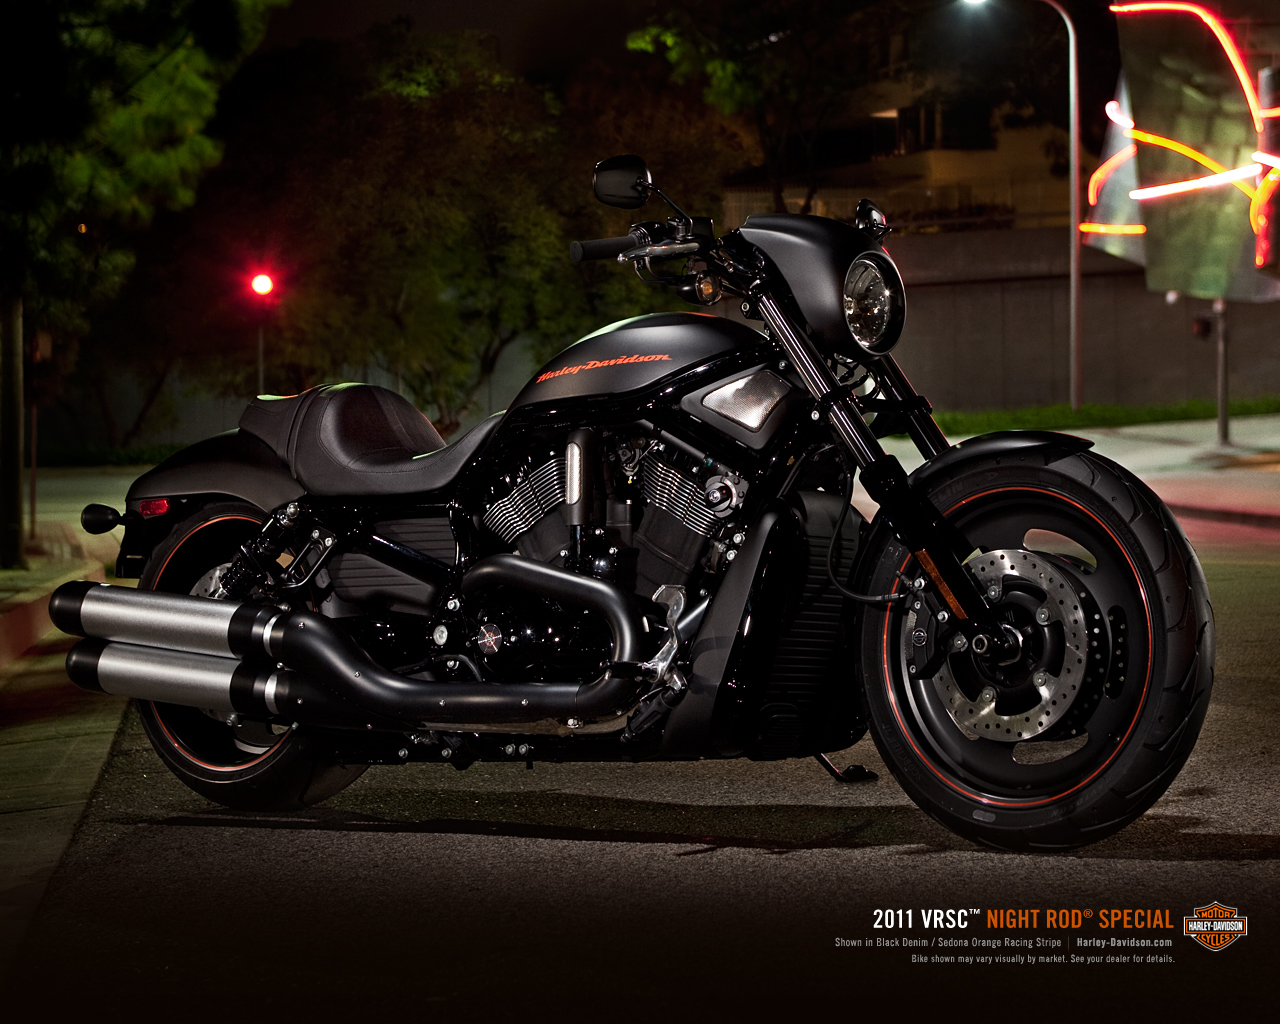 Harley-Davidson V-Rod Night Rod Special #2